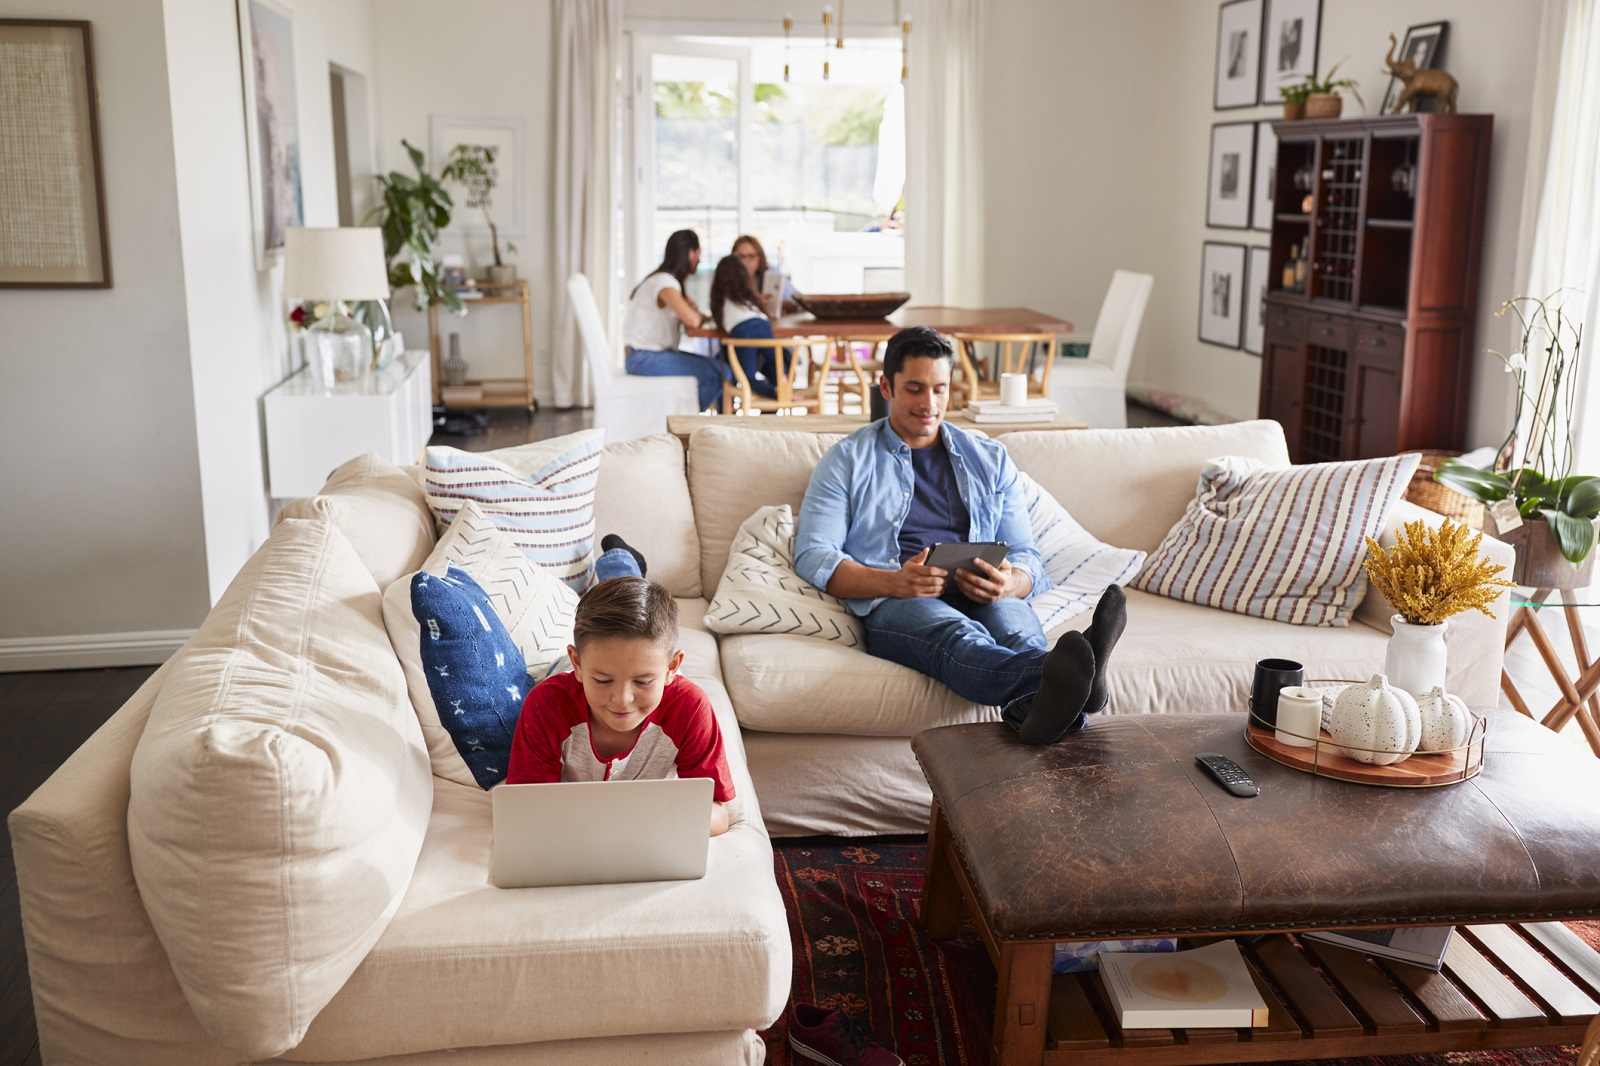 Pre-teen boy lying on sofa using laptop, dad using tablet, mum, sister and grandma in the background